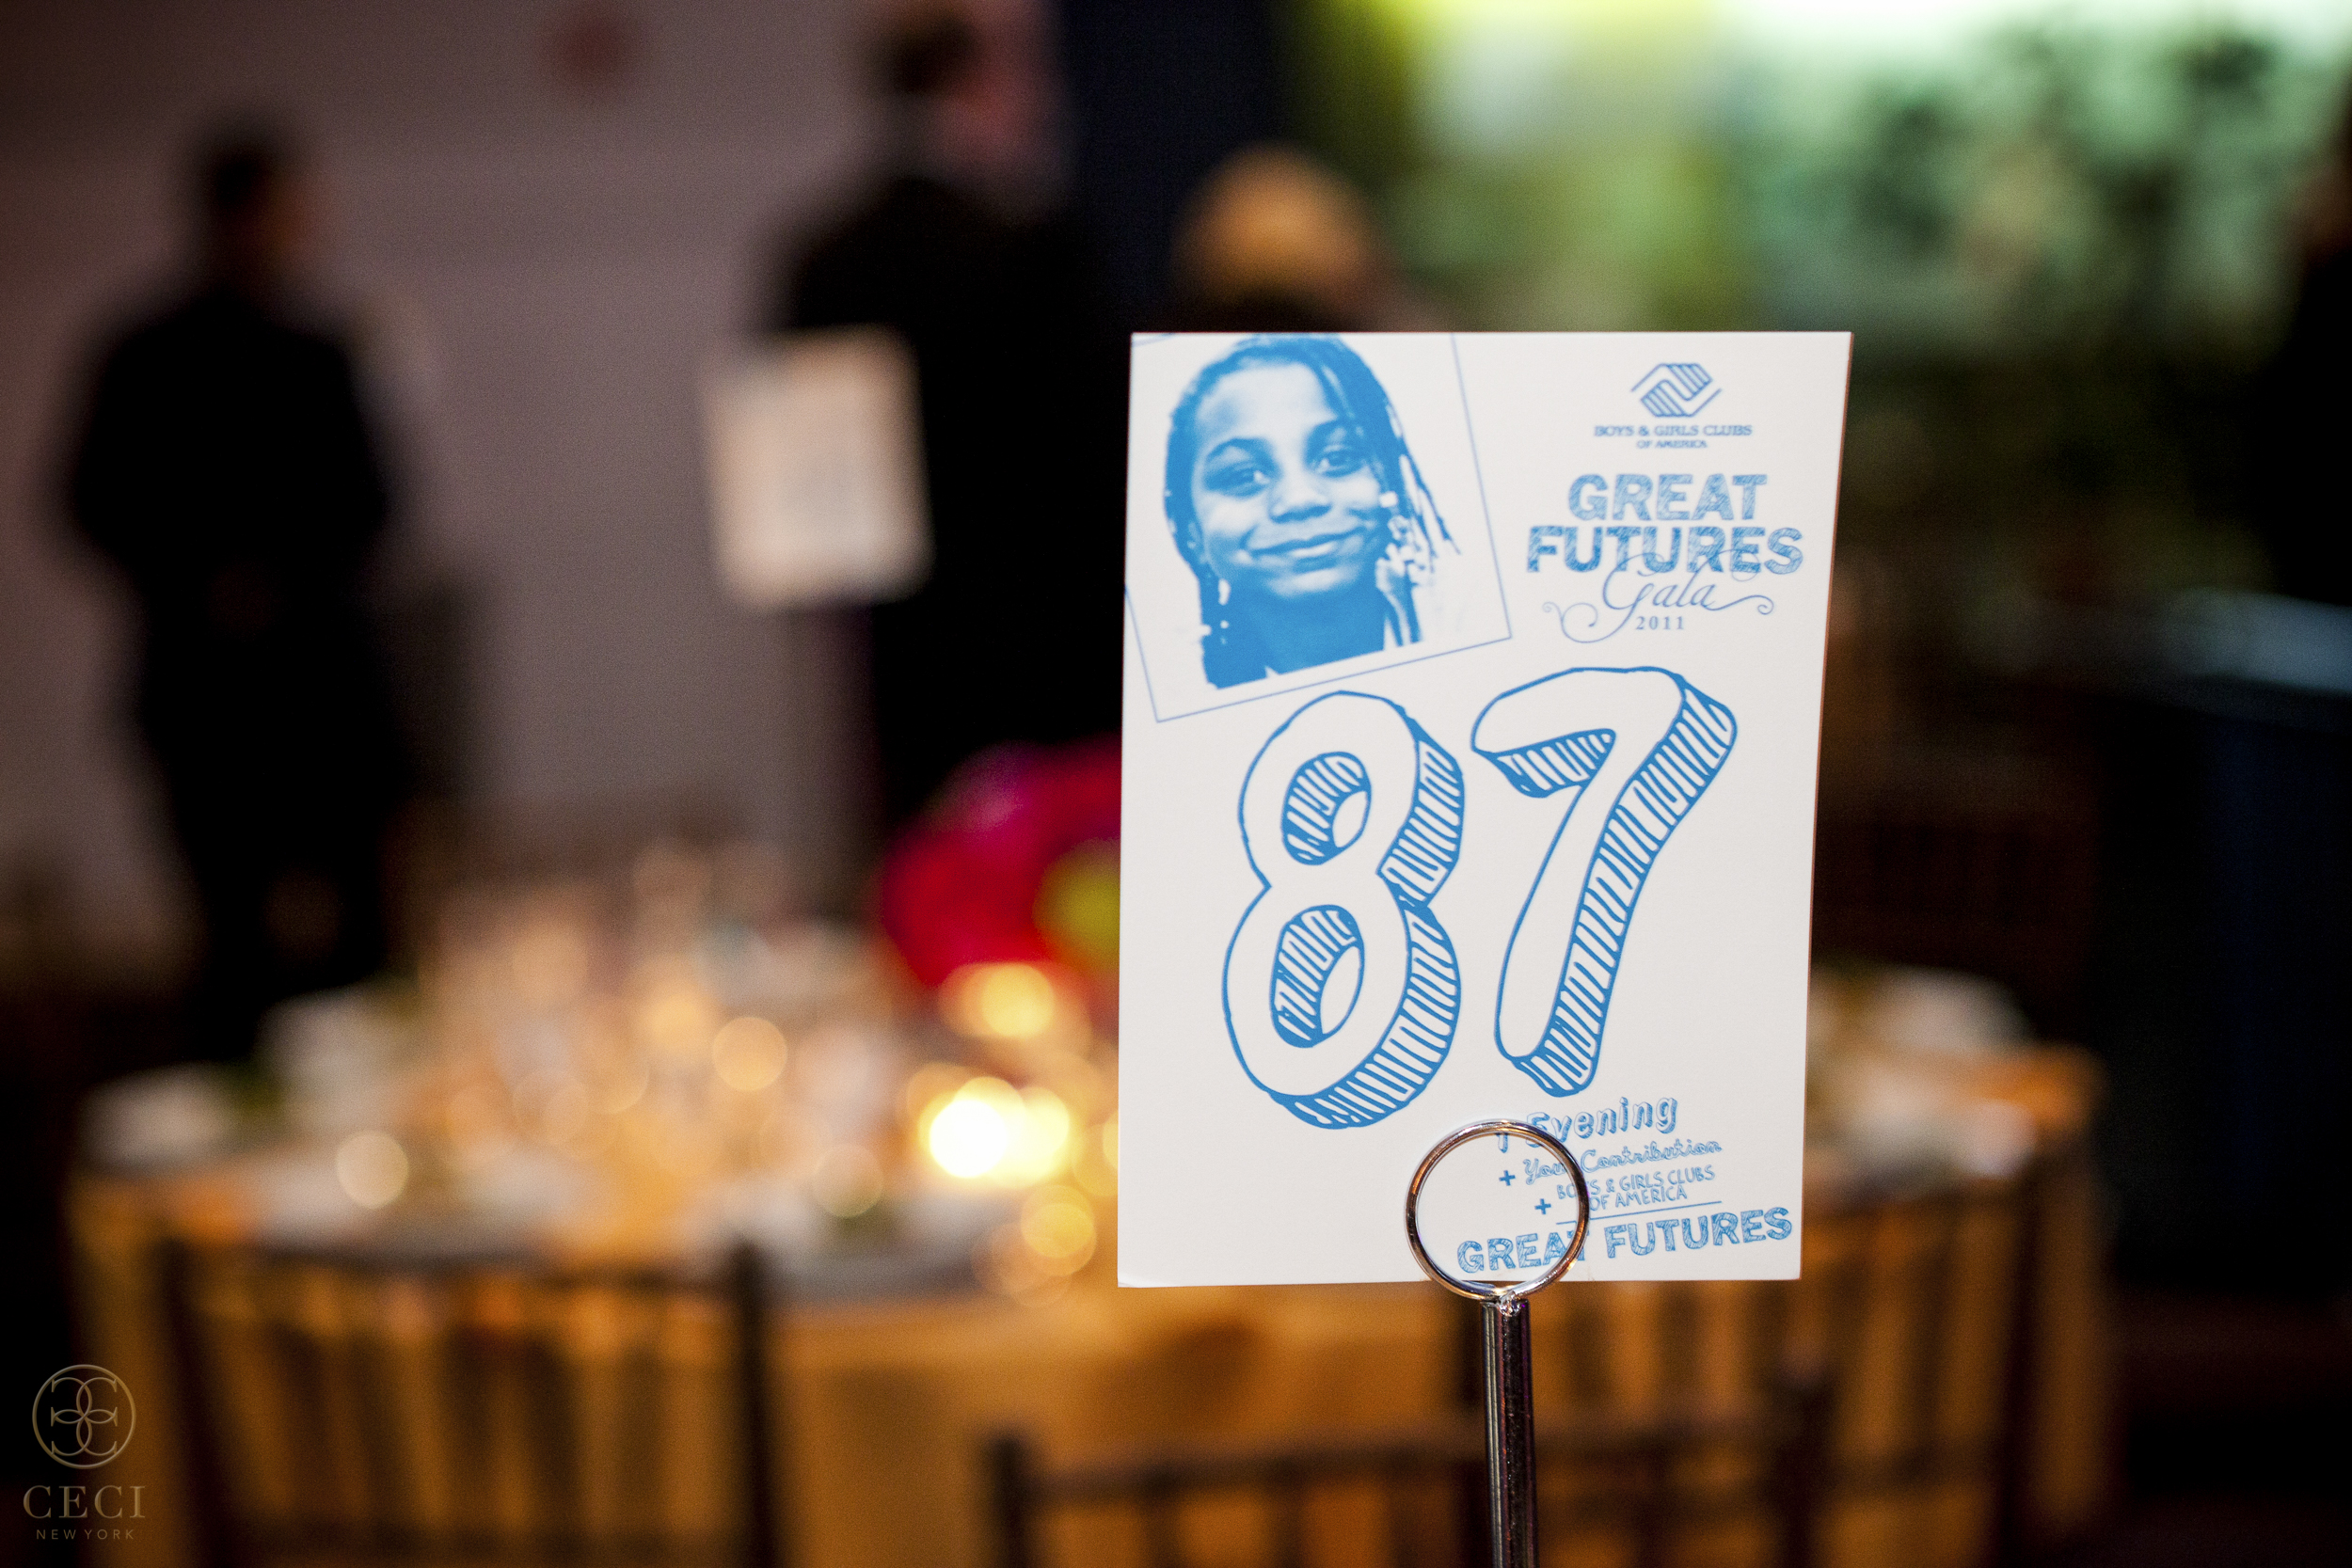 ceci-new-york-gives-back-boys-and-girls-club-of-america-great-futures-gala-2011-invitations-design-paper-accessories-signage-20.jpg